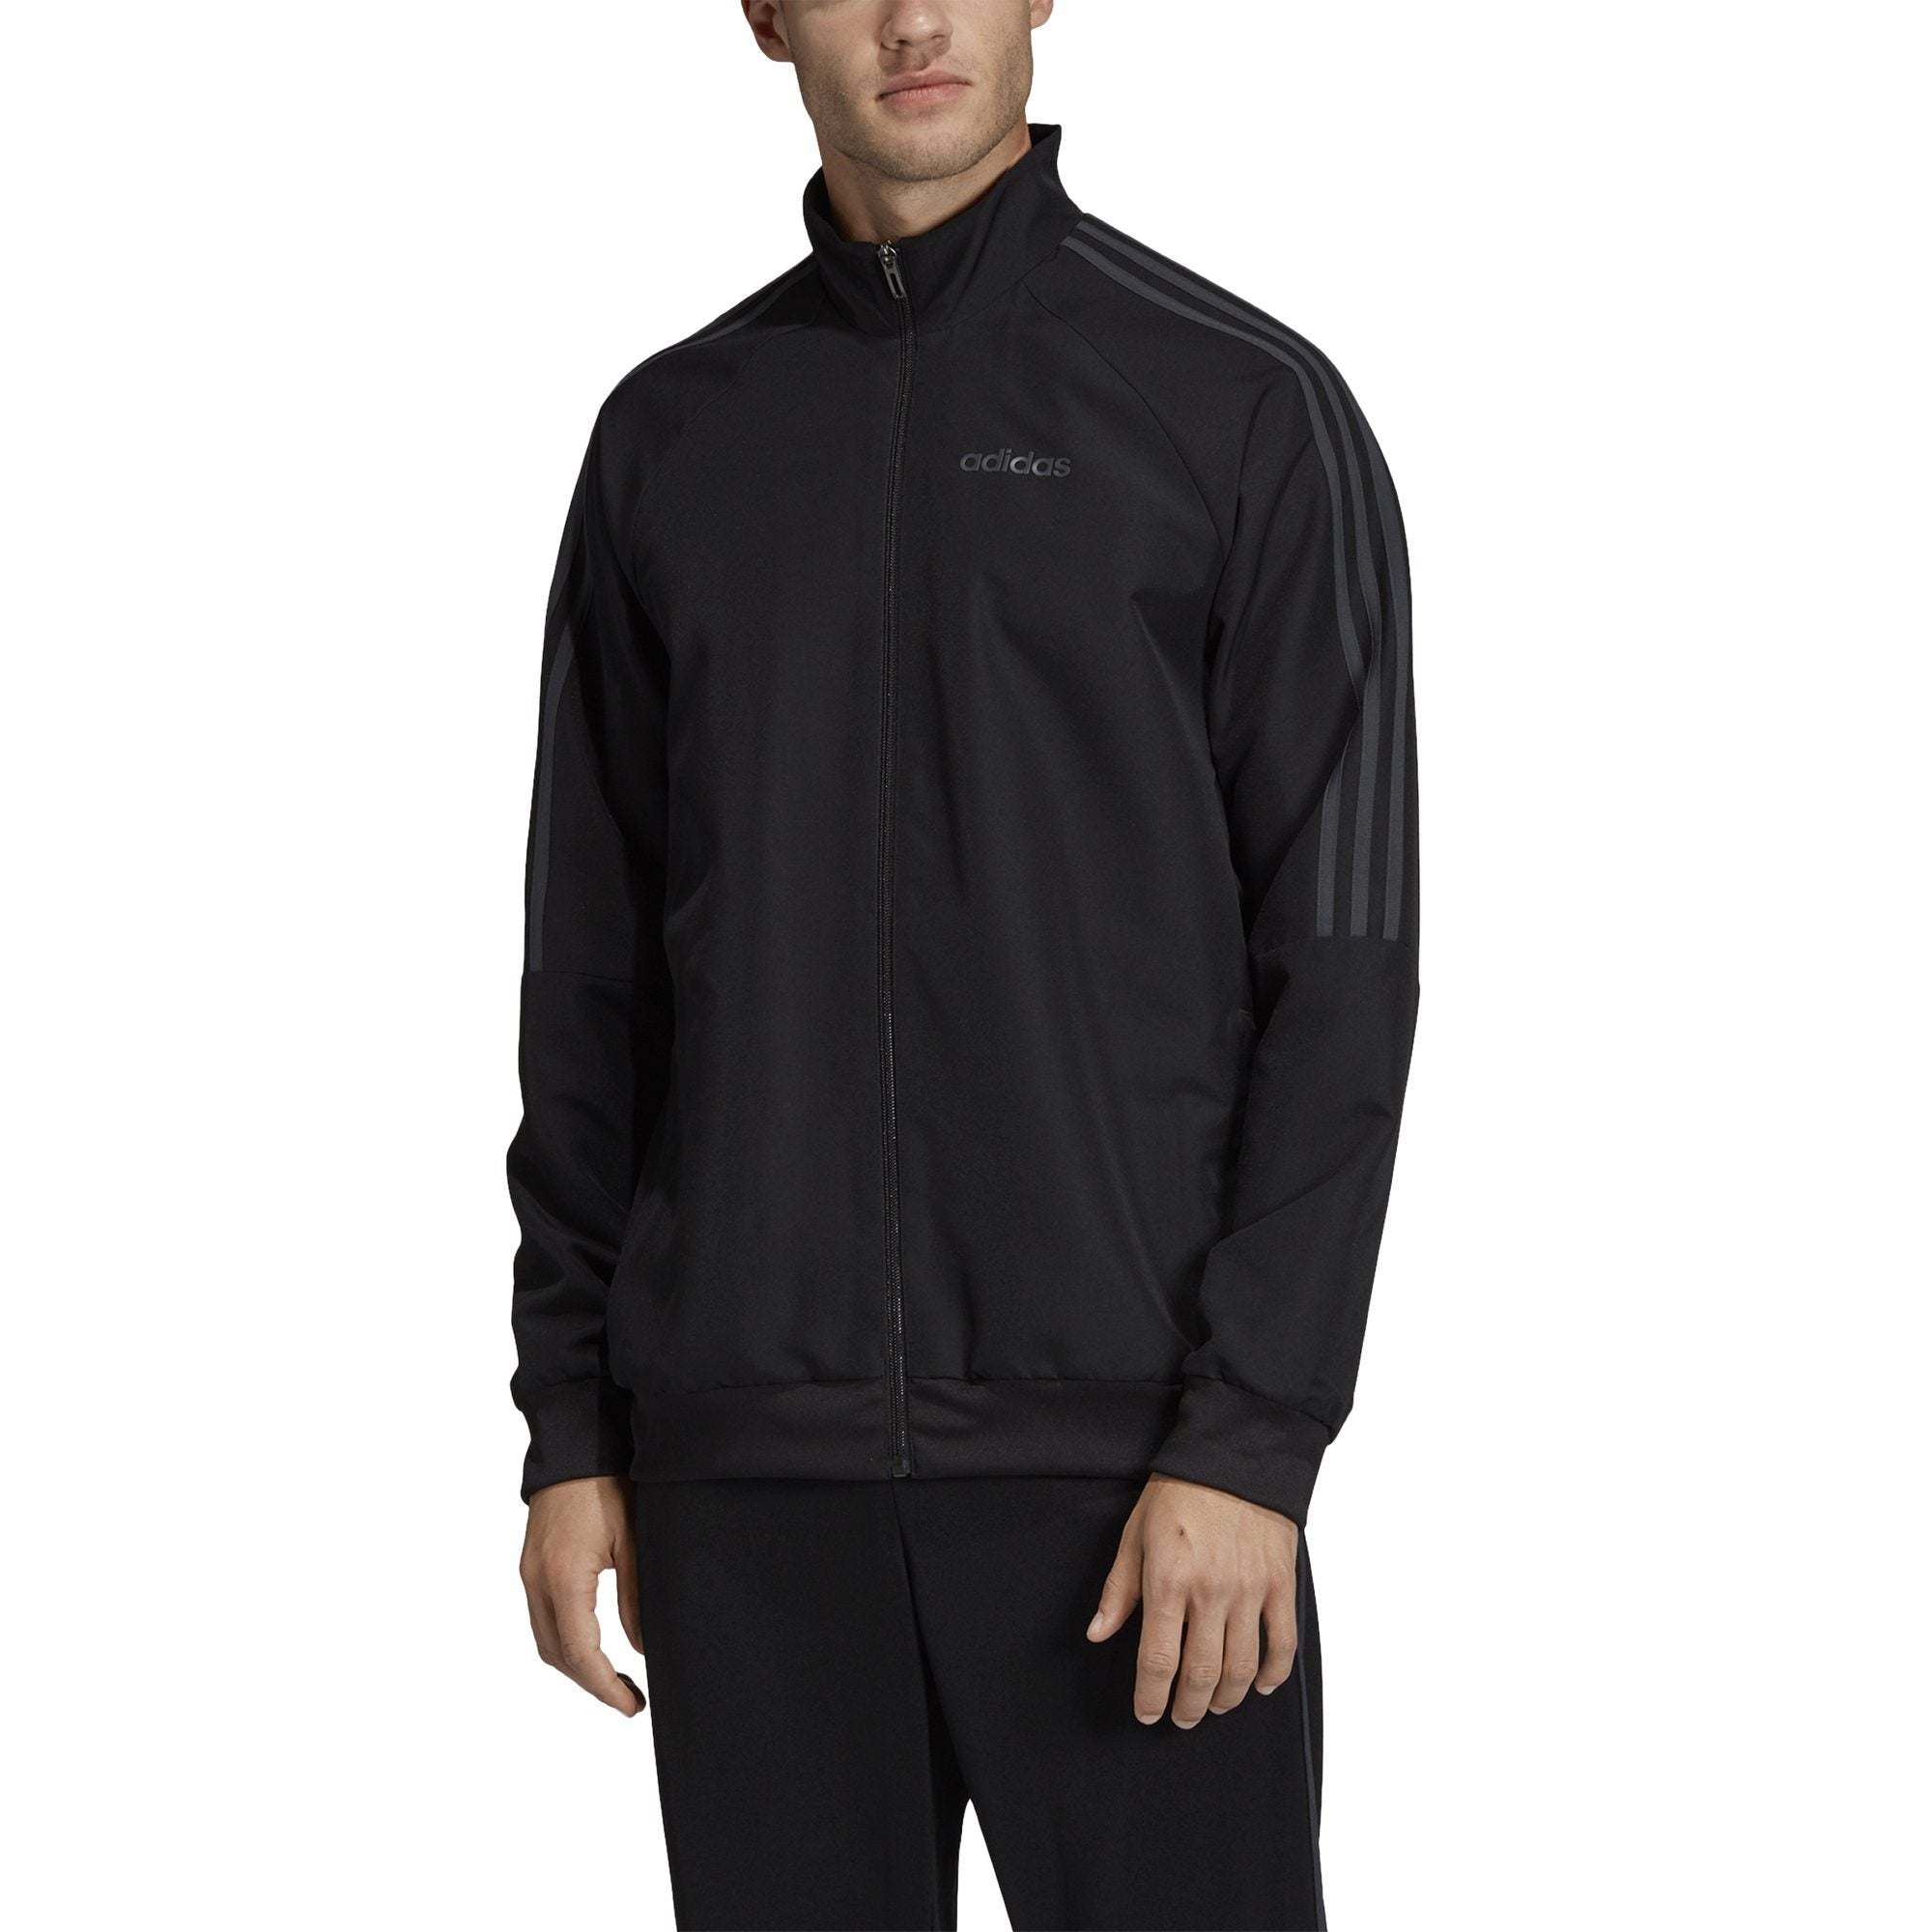 Adidas Mens Sereno 19 Presentation Jacket - Black/Dark Grey SP-ApparelJackets-Mens Adidas